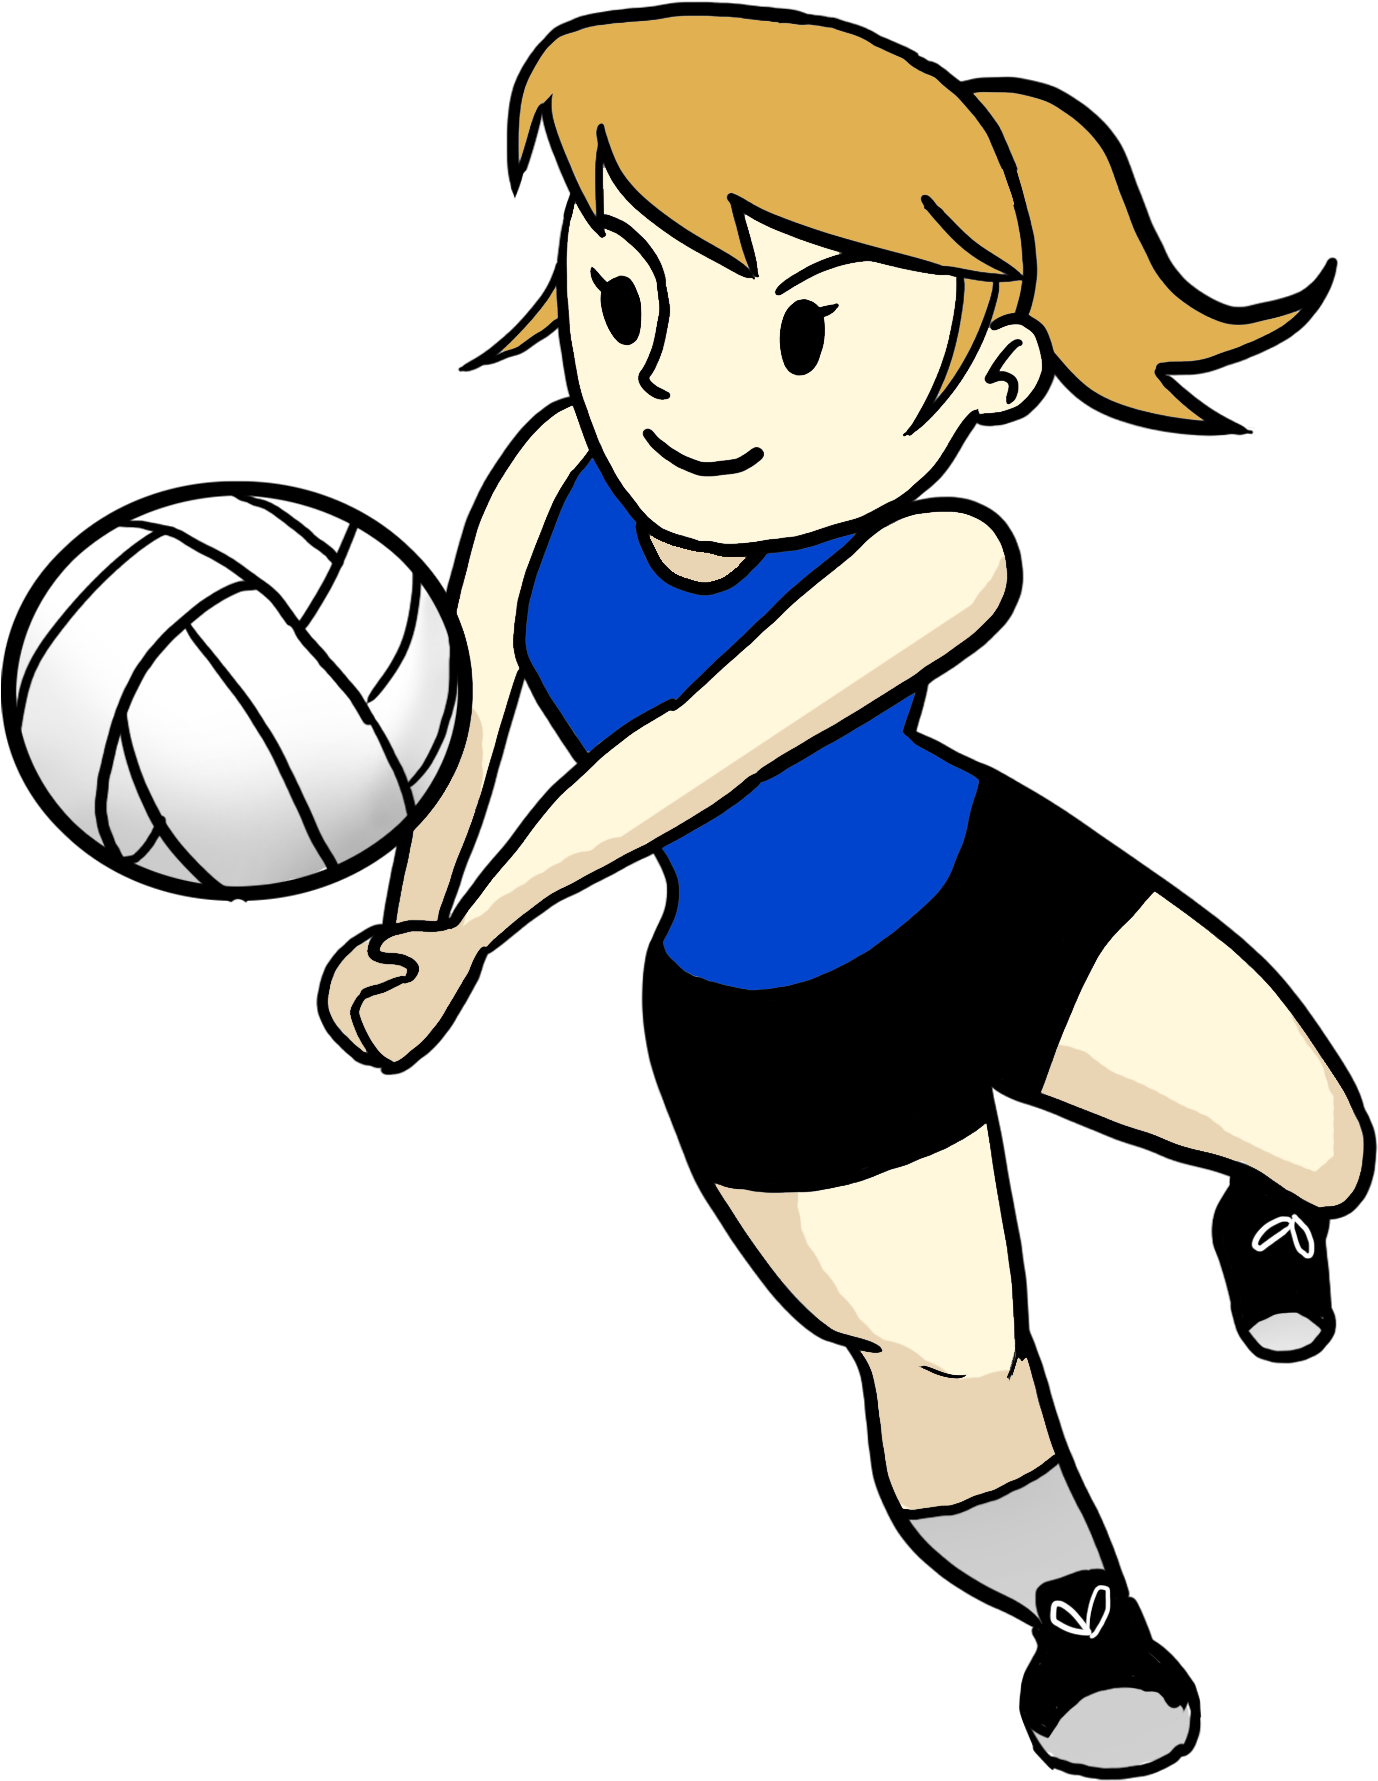 Images For Volleyball Coach Cartoon - Emojis De Volleyball (1800x1800)